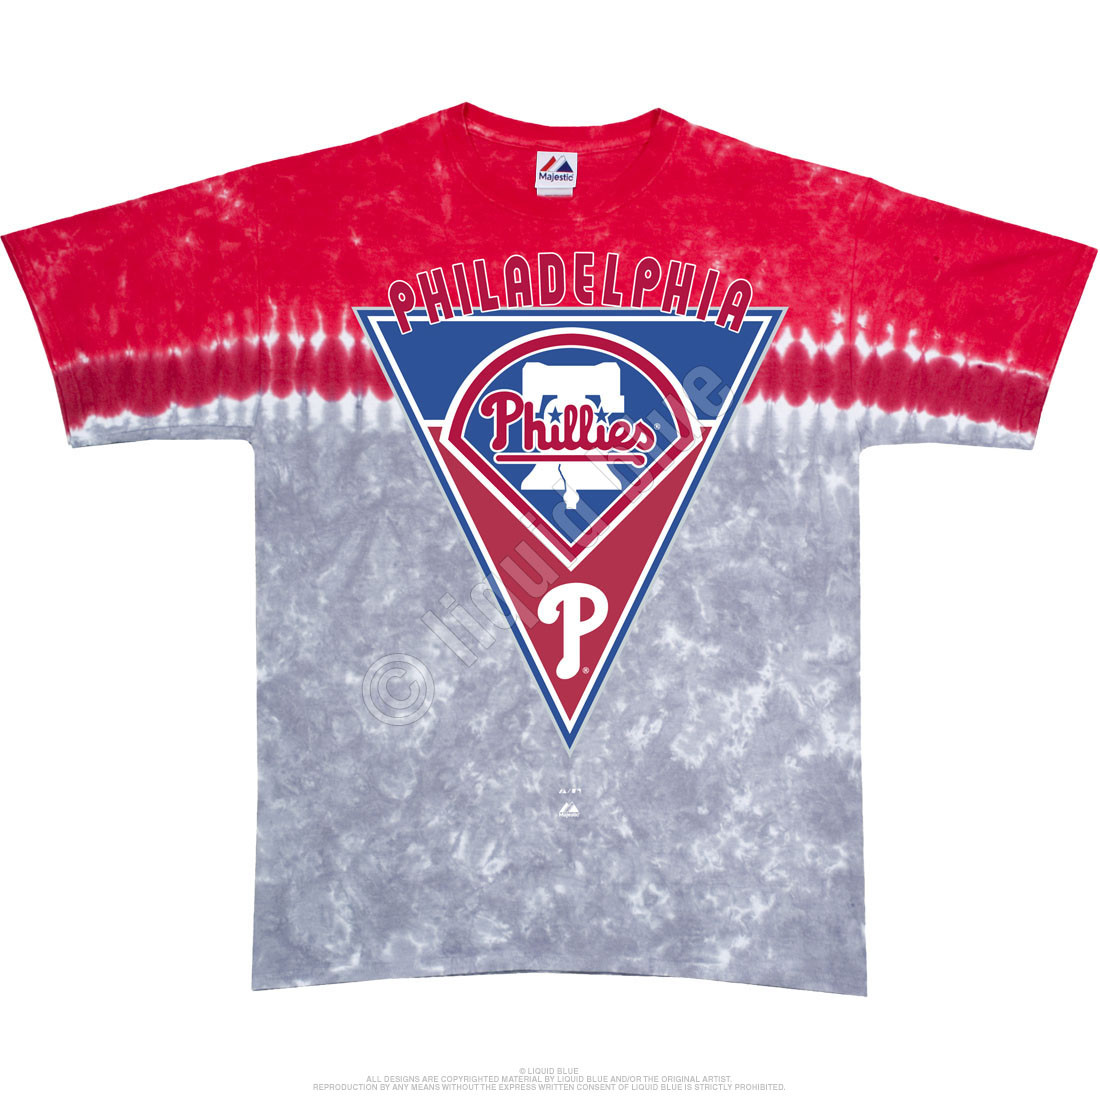 Philadelphia Phillies Pennant Tie-Dye T-Shirt - Clearance 30% OFF